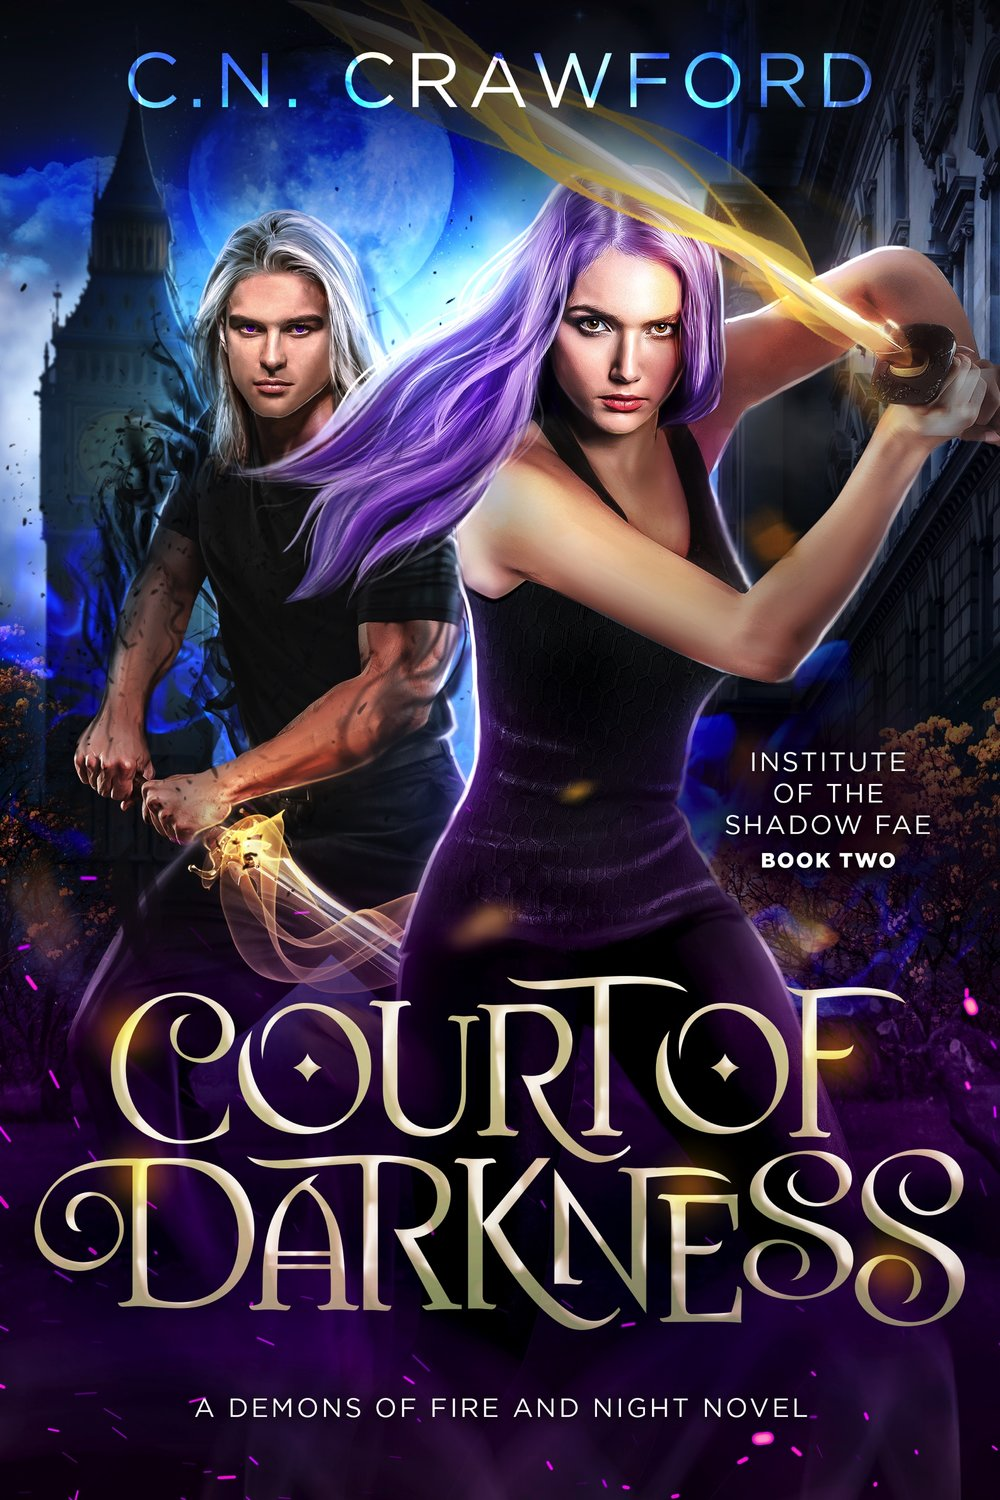 Book 2: Court of Darkness